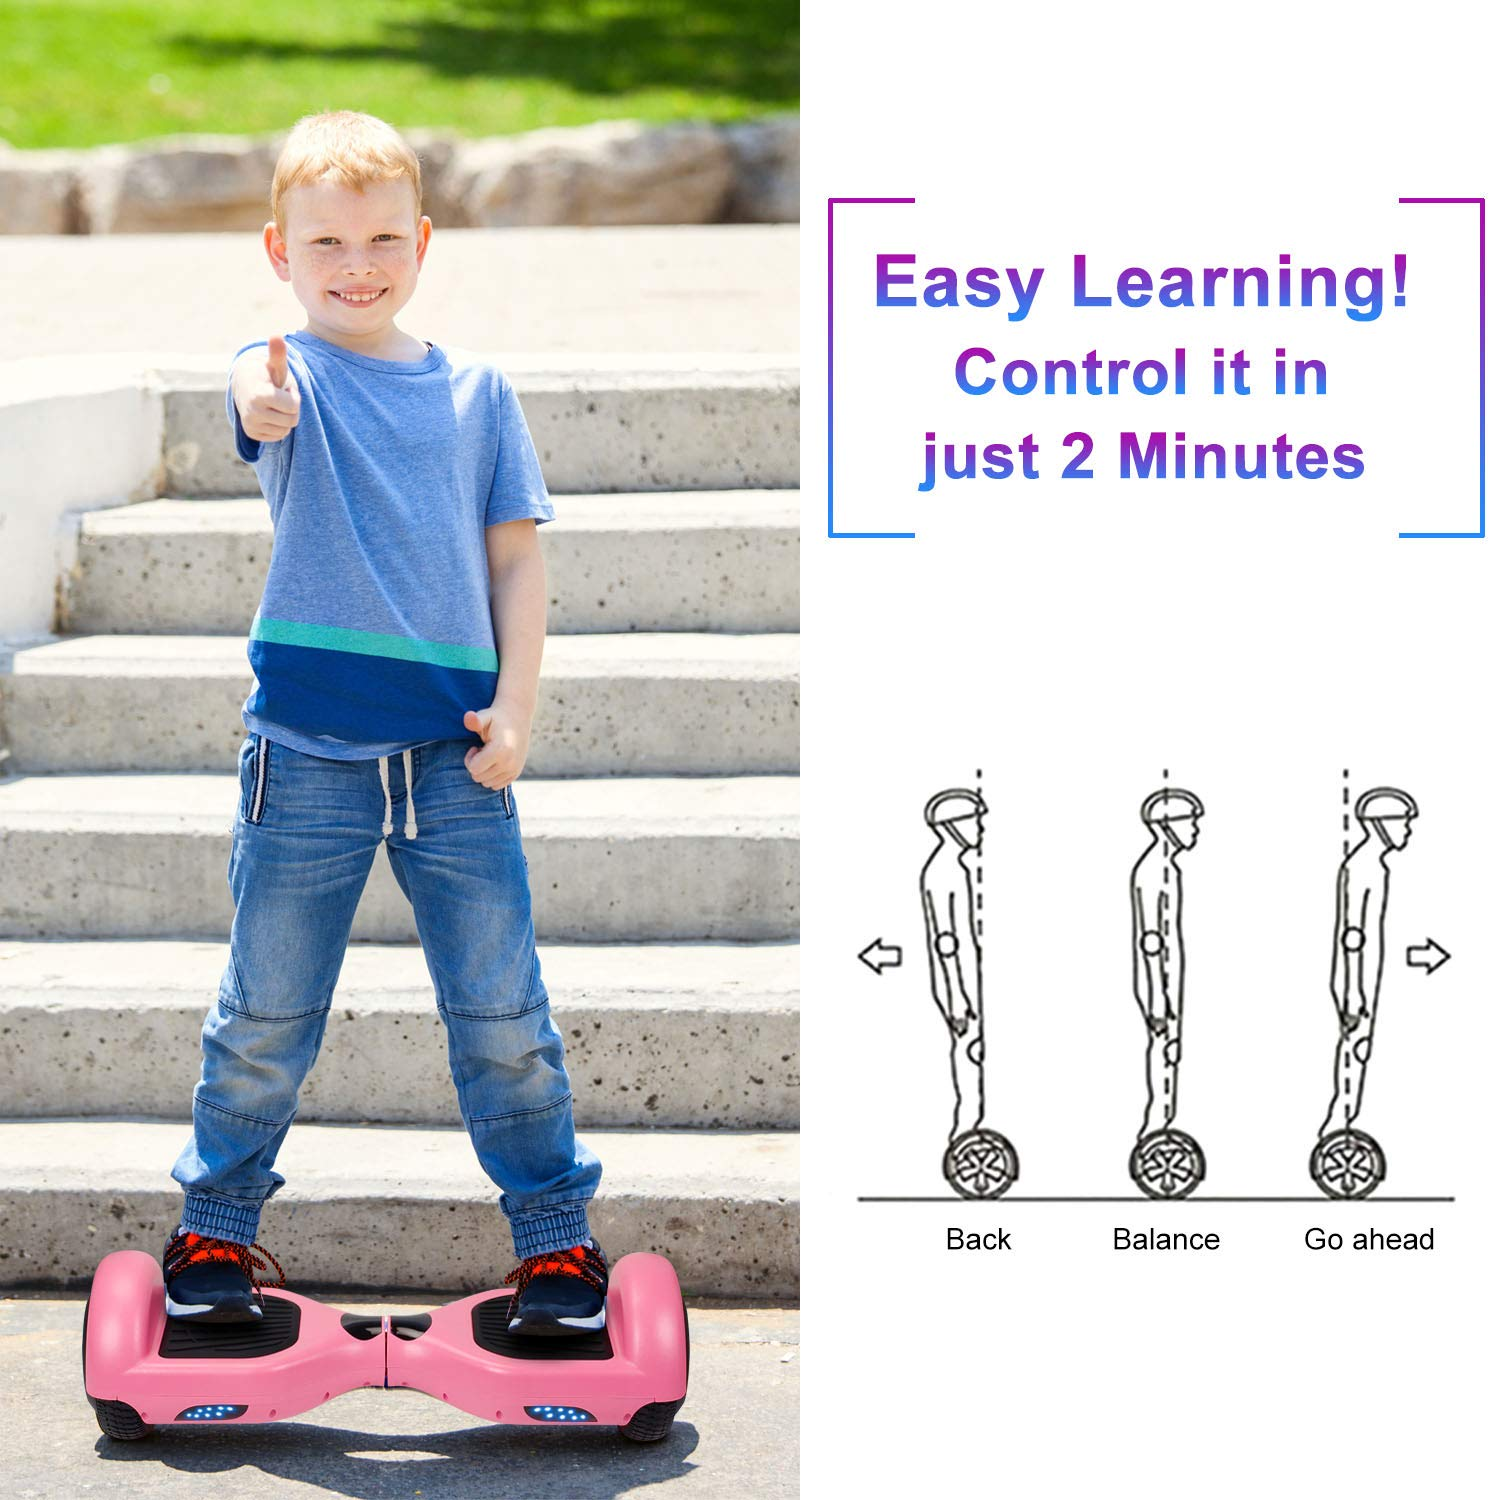 SISIGAD Hoverboard Self Balancing Scooter 6.5'' Two-Wheel Self Balancing Hoverboard with LED Lights Electric Scooter for Adult Kids Gift UL 2272 Certified - Pink by SISIGAD (Image #6)